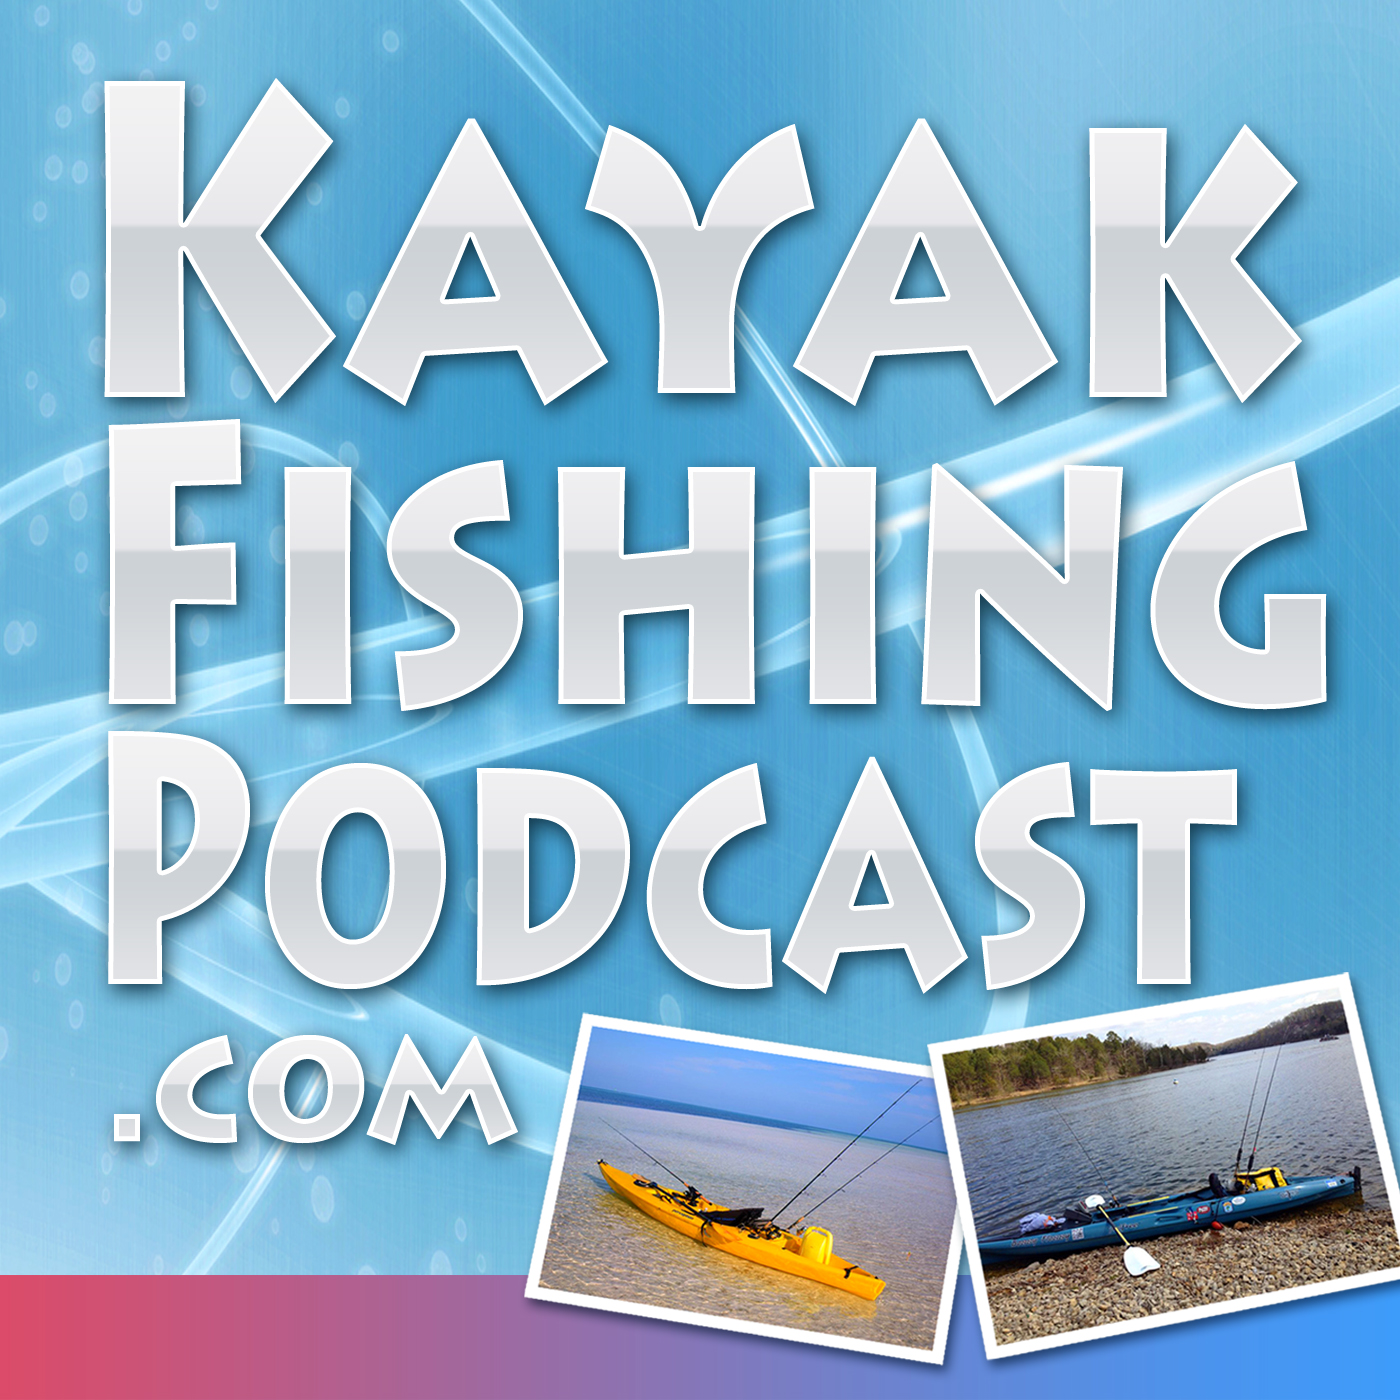 Podcast – Kayak Fishing Podcast